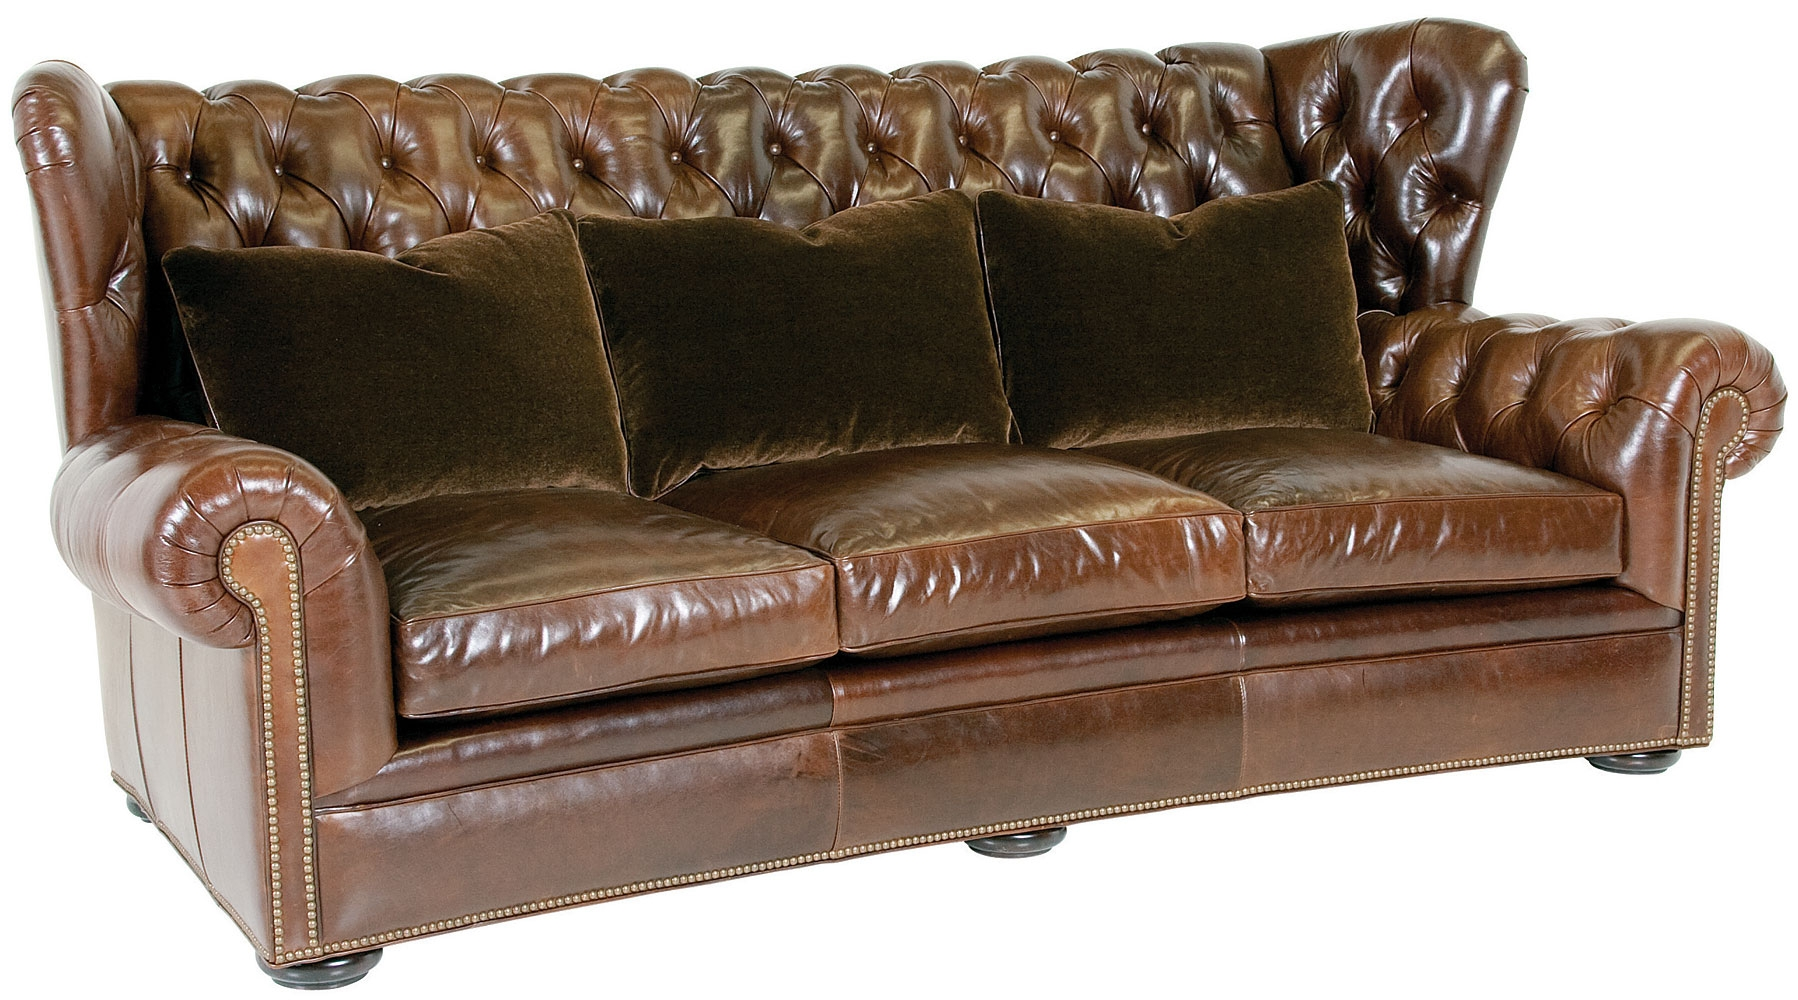 Leather Wingback Chesterfield Sofa With Nailhead Trim Club Furniture Within Chesterfield Recliners (View 7 of 15)